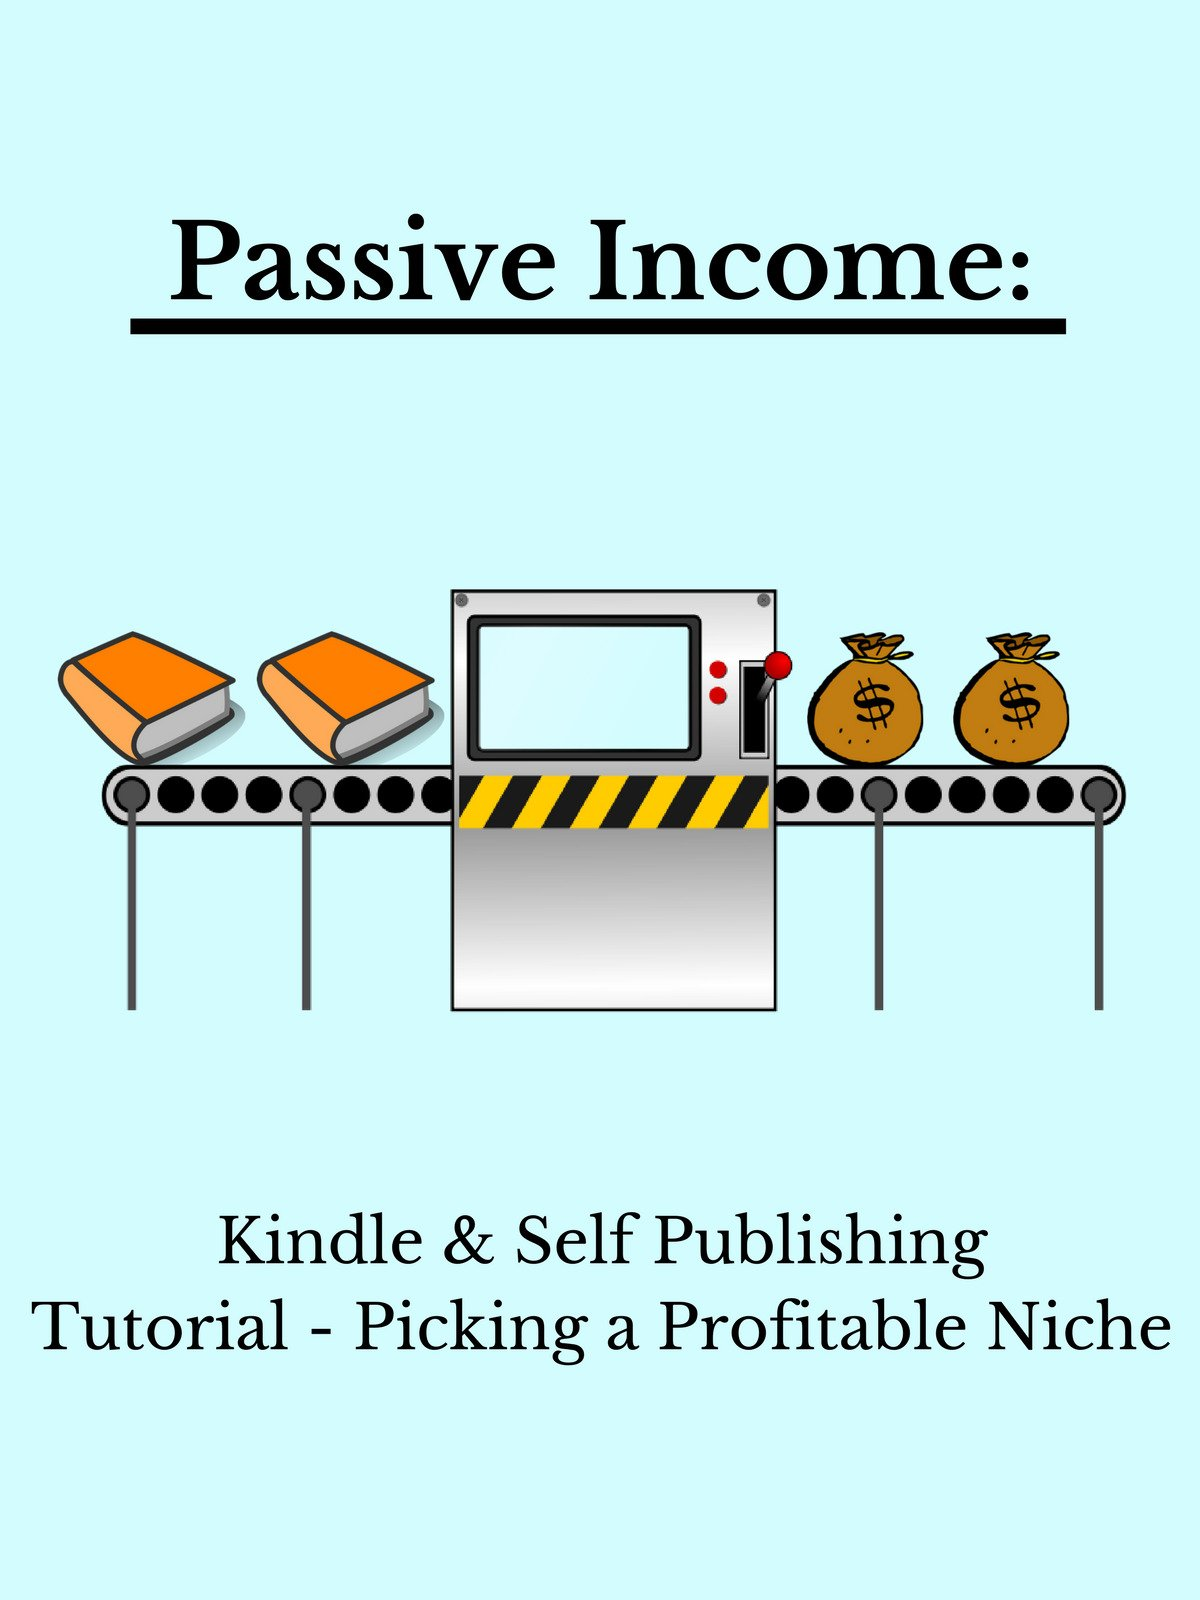 Amazon.com: Passive Income: Kindle & Self Publishing Tutorial - How to Pick  a Profitable Niche: Ben Gothard, Madison Pierce: Amazon Digital Services LLC